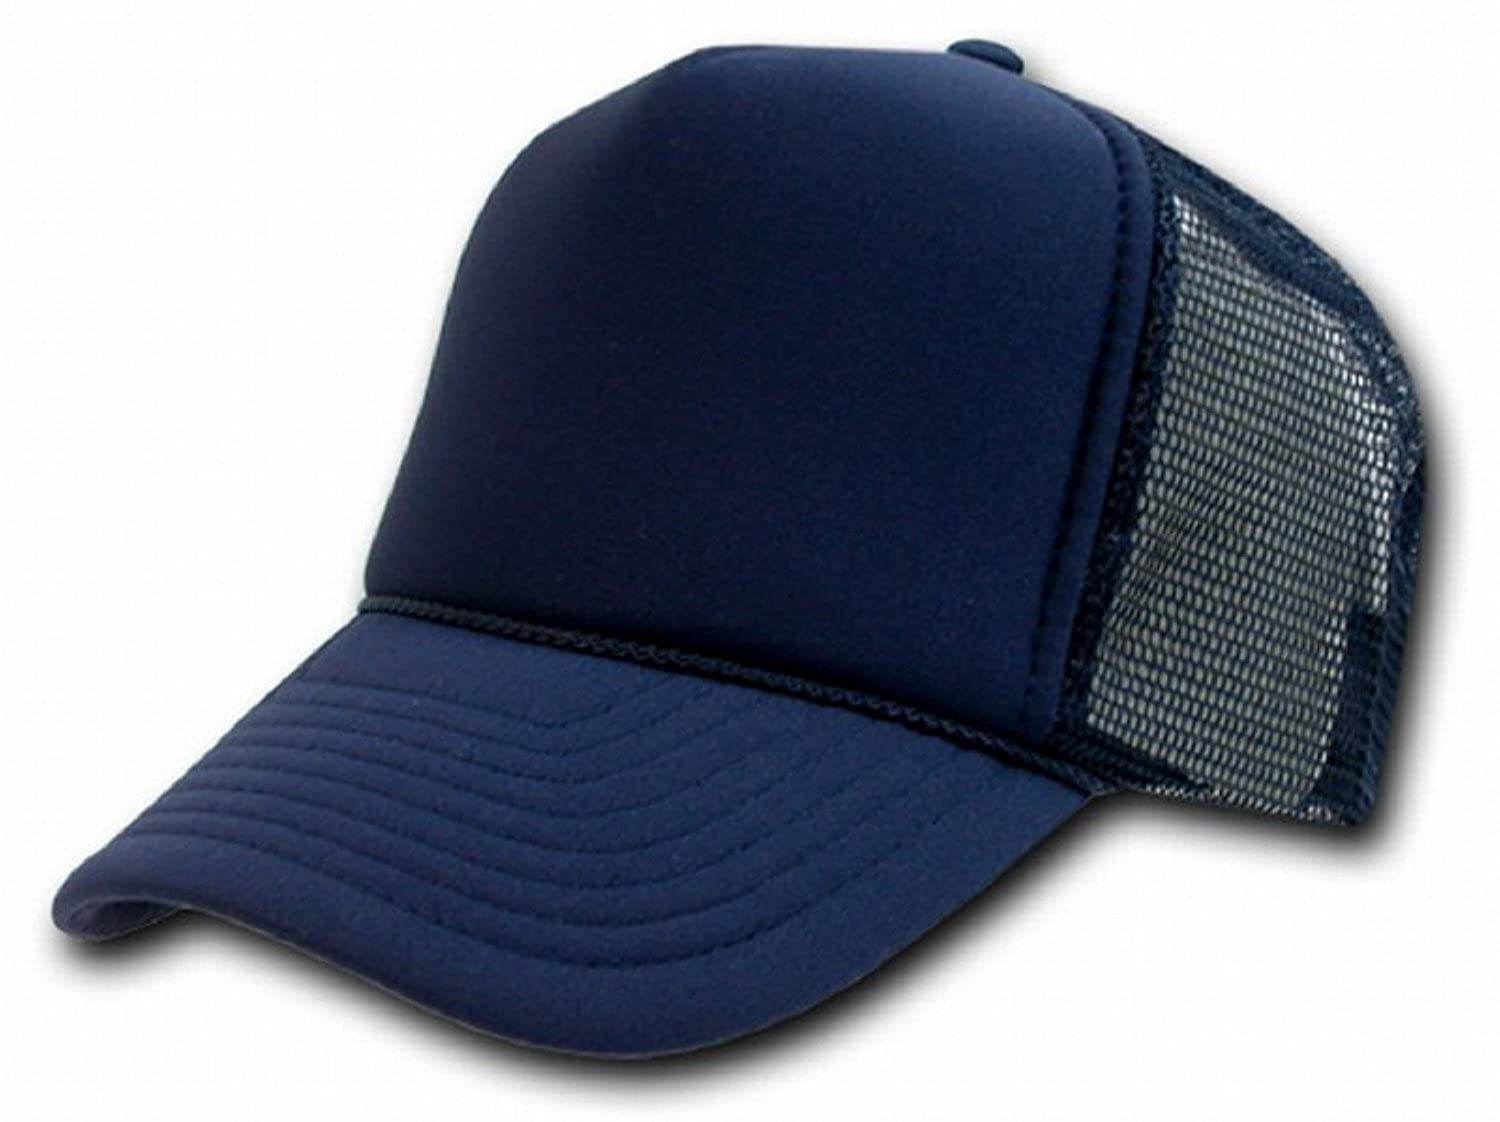 07848783cd05d NAVY BLUE MESH TRUCKER STYLE CAP HAT CAPS HATS ADJUSTABLE at Amazon Men s  Clothing store  Baseball Caps